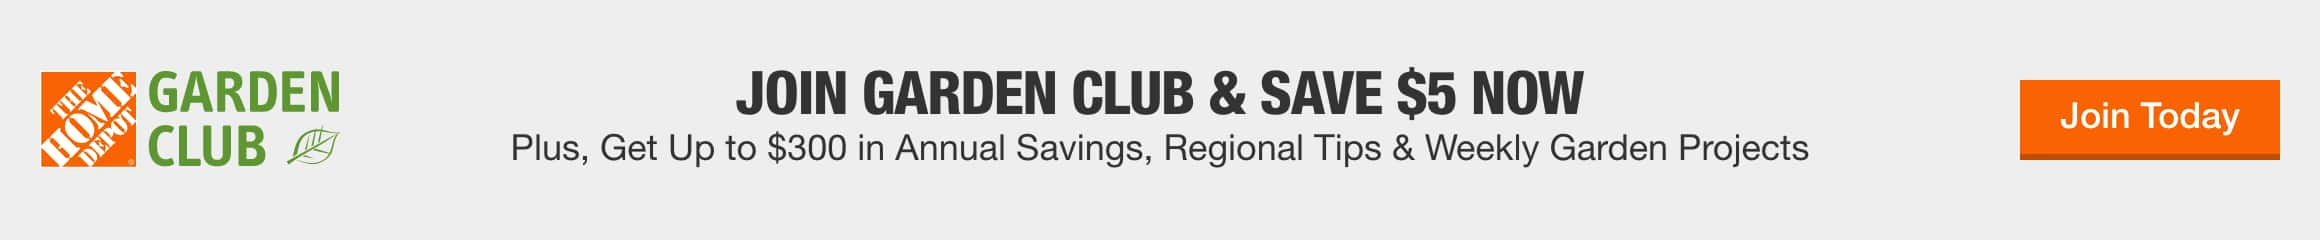 Join Garden Club & save $5 now